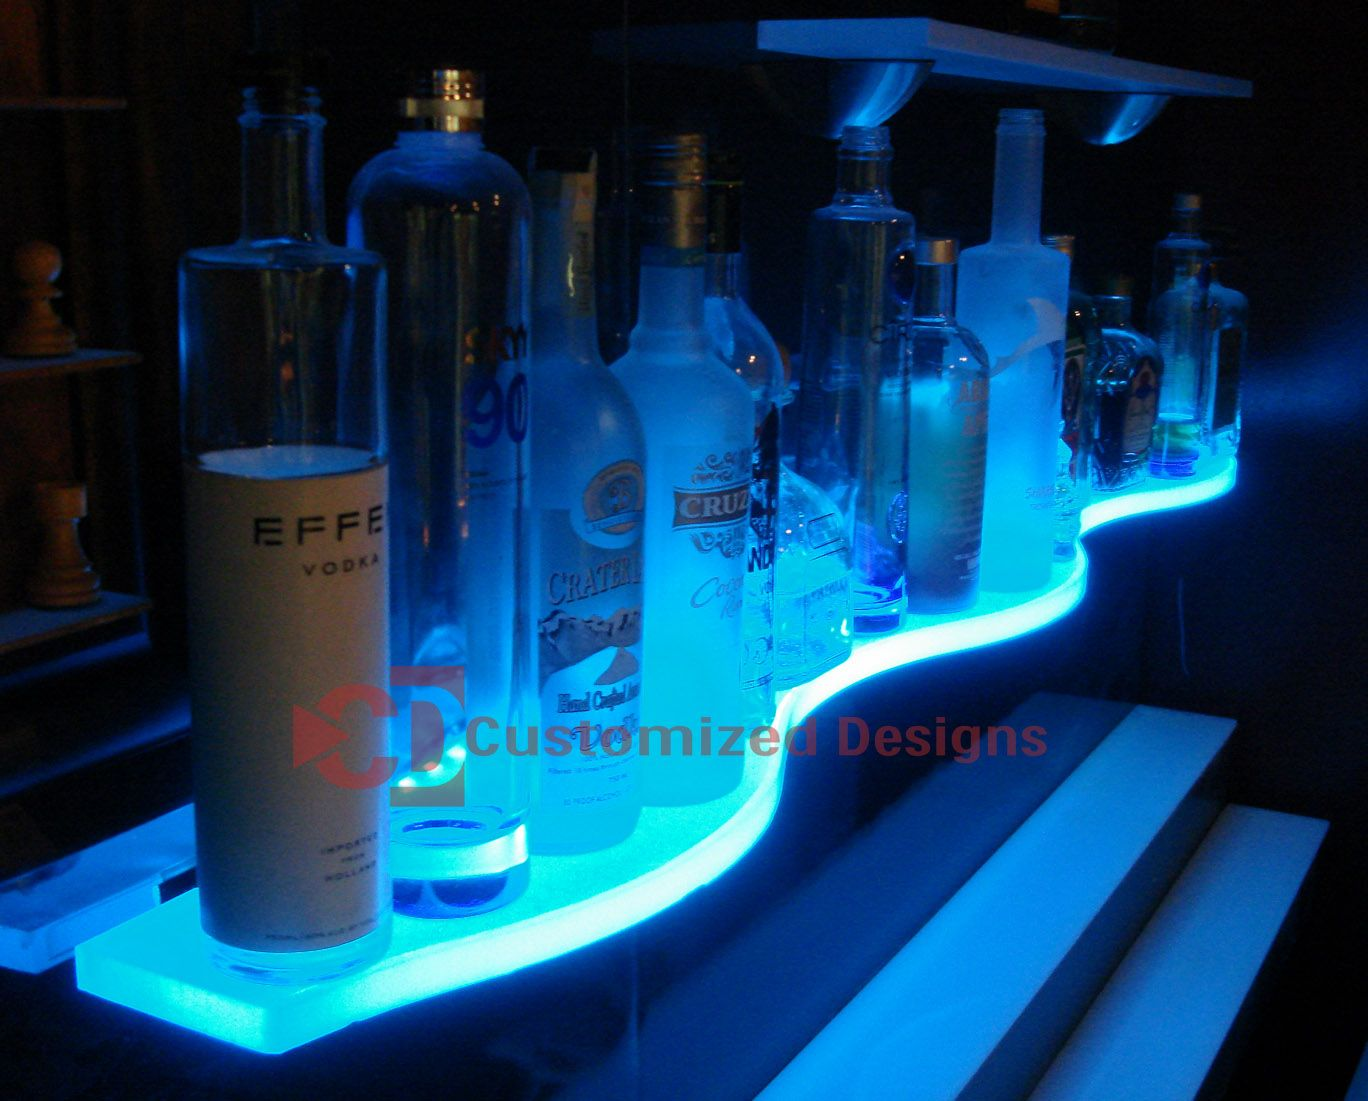 Stupendous Led Glass Bar Shelves Lighted Floating Shelves Kbis Download Free Architecture Designs Embacsunscenecom